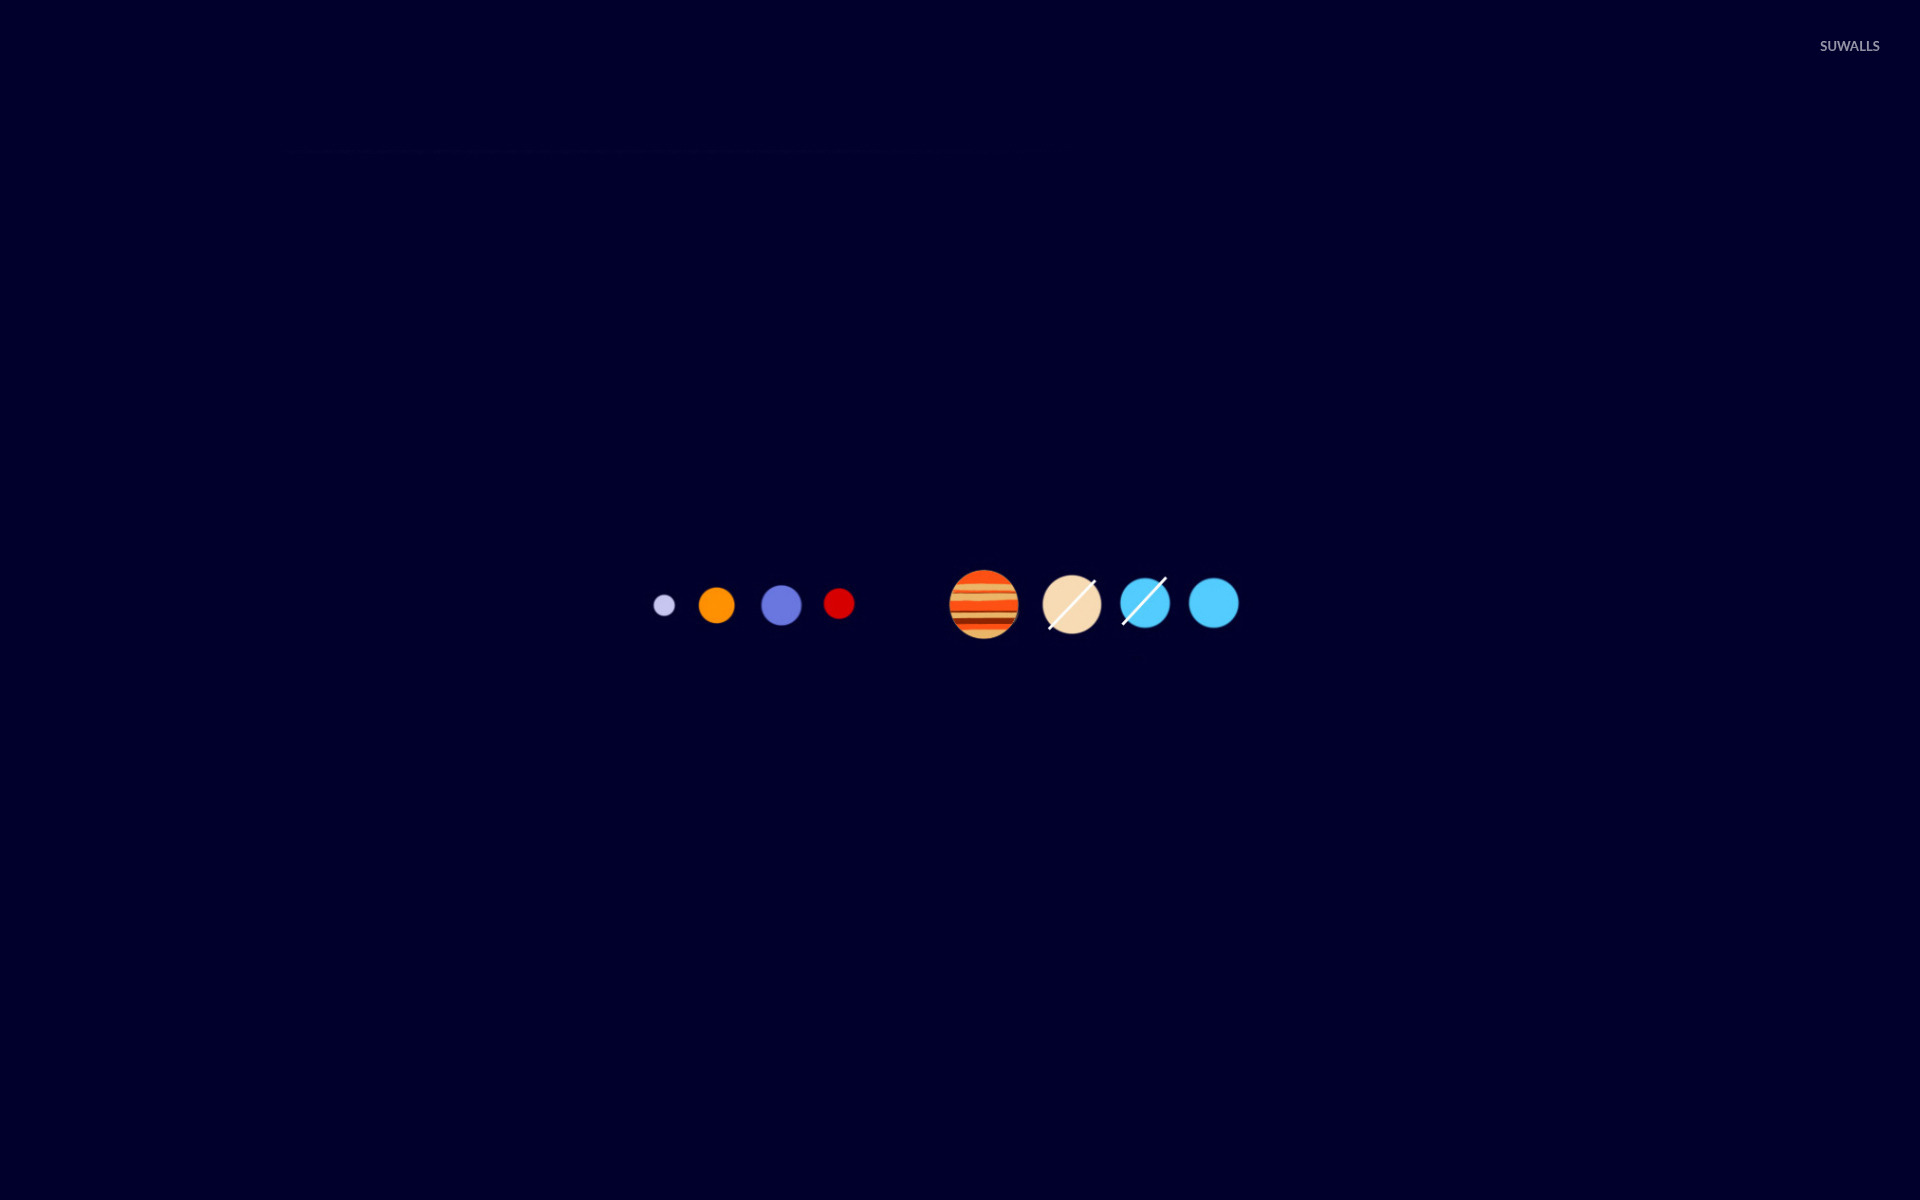 best solar system wallpaper - photo #46